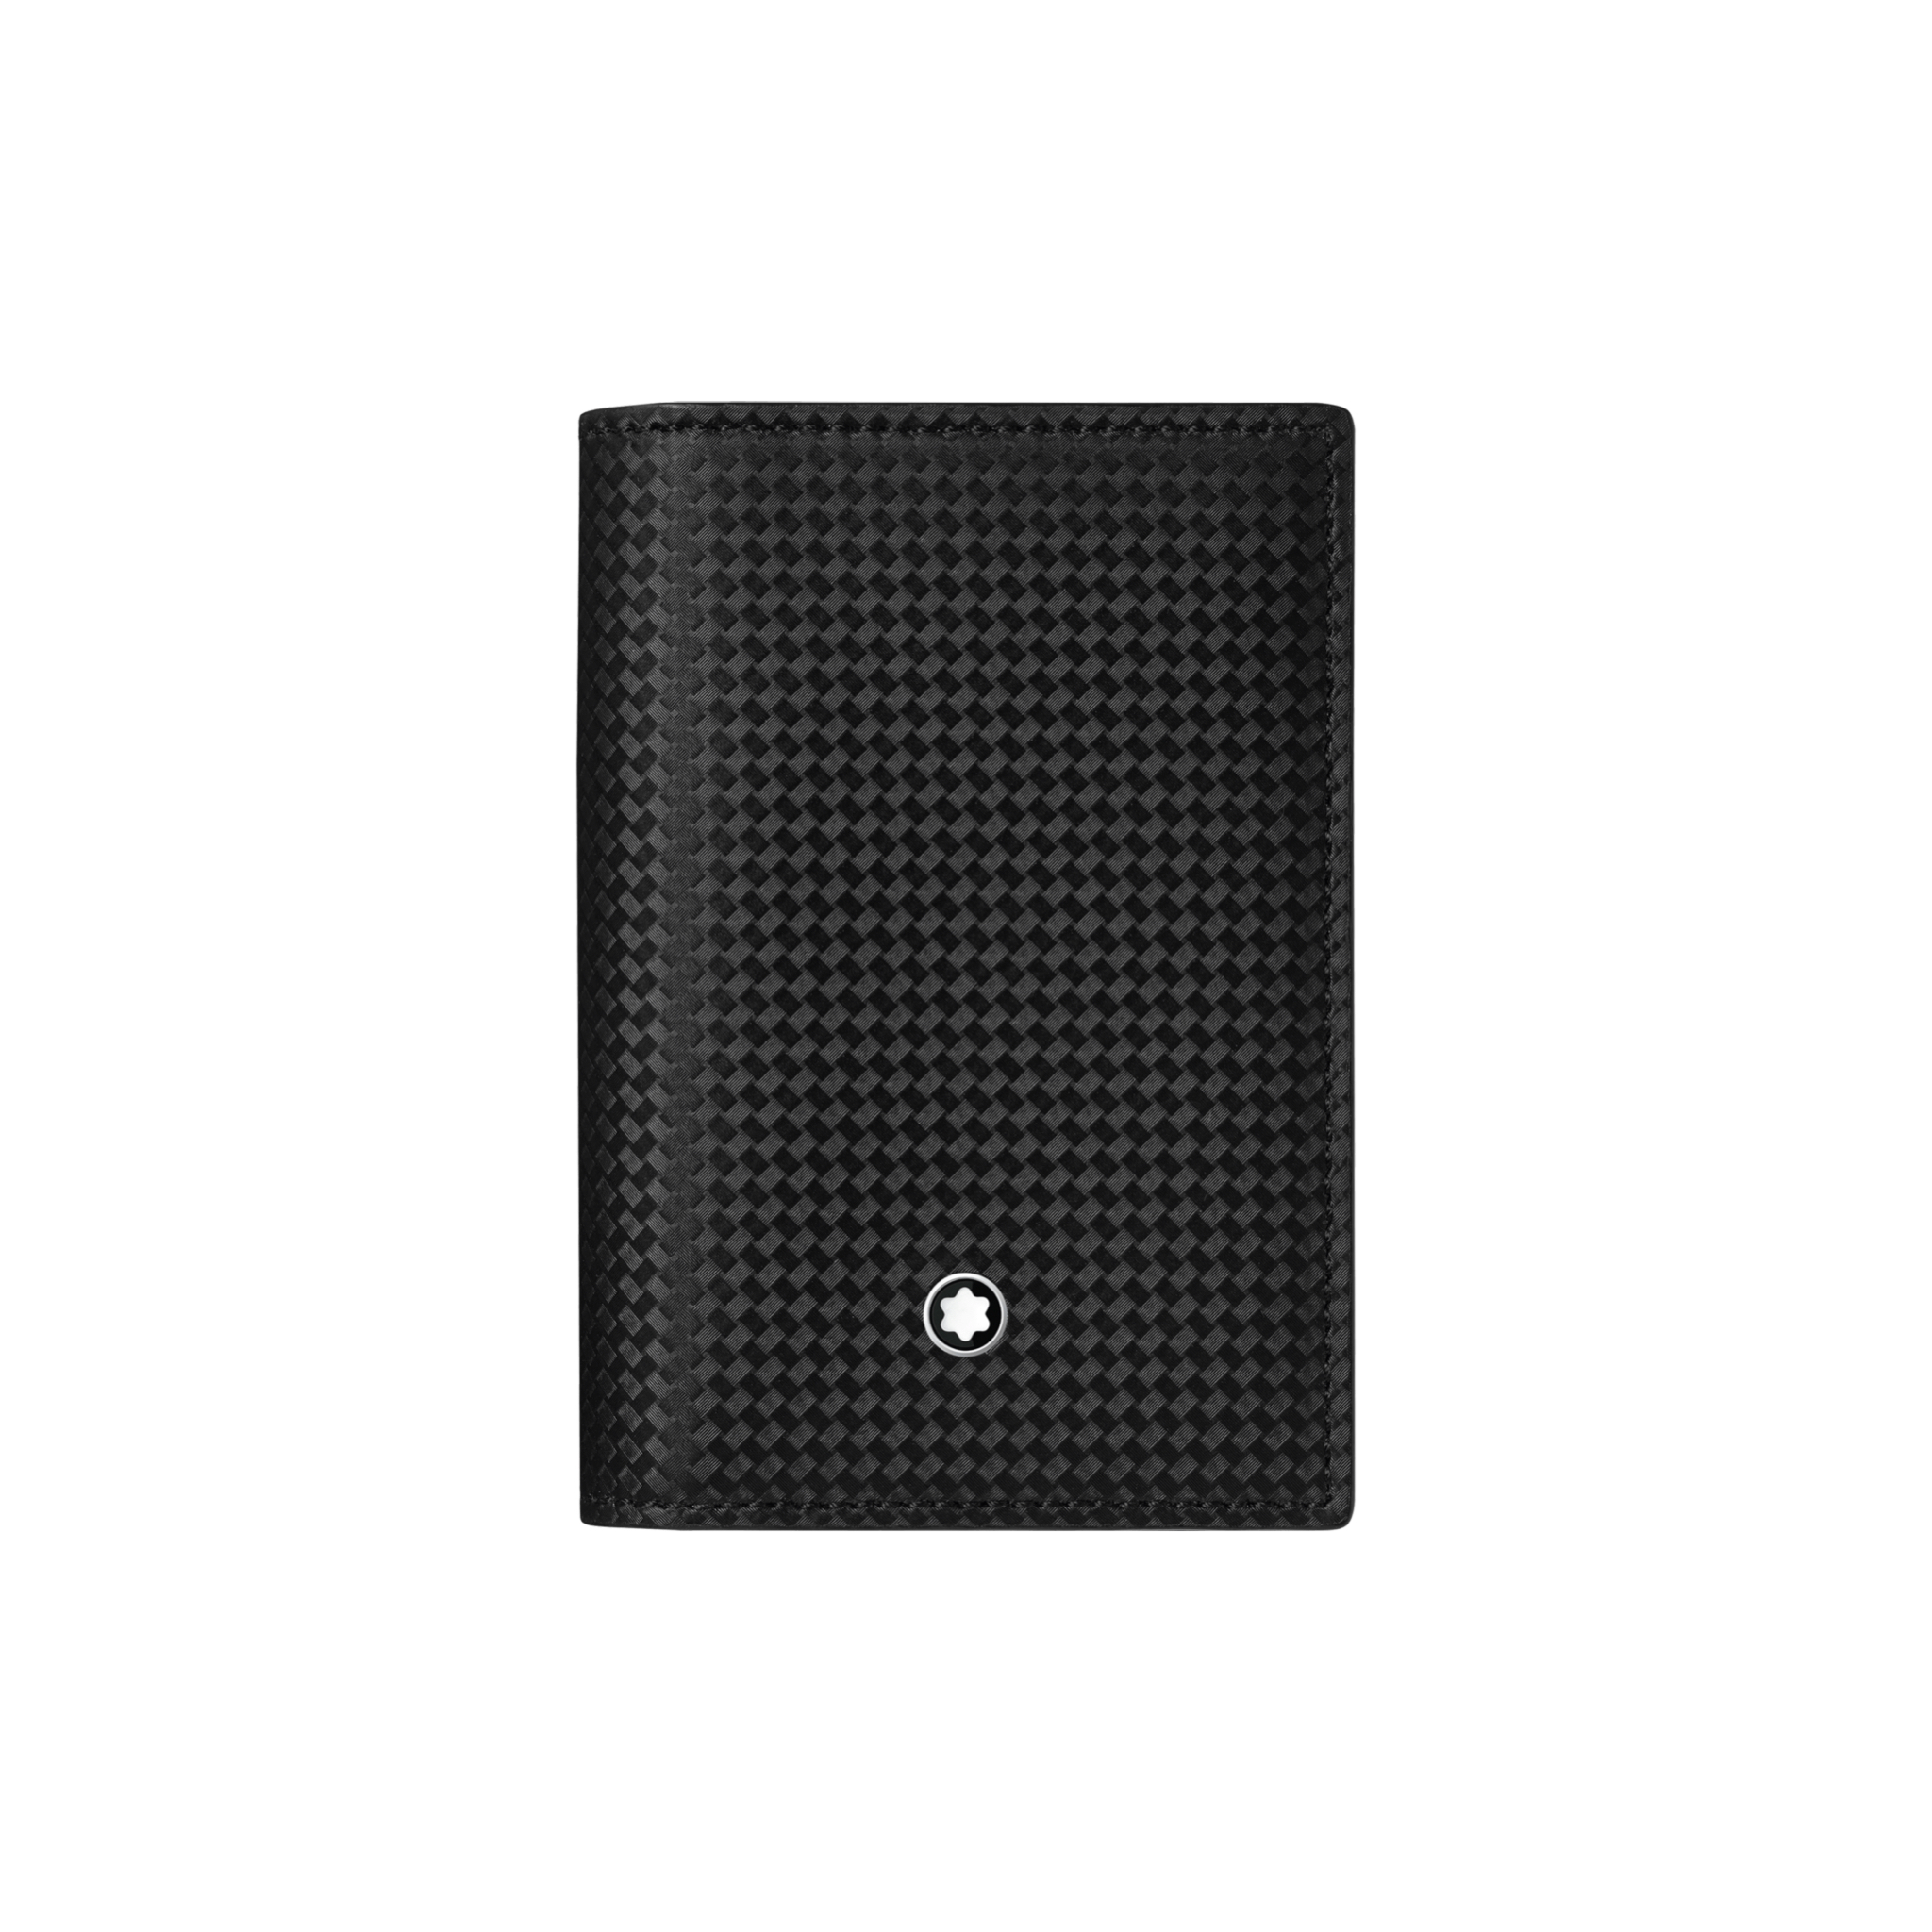 Montblanc Extreme 2 0 Business Card Holder With View Pocket Style Of Zug